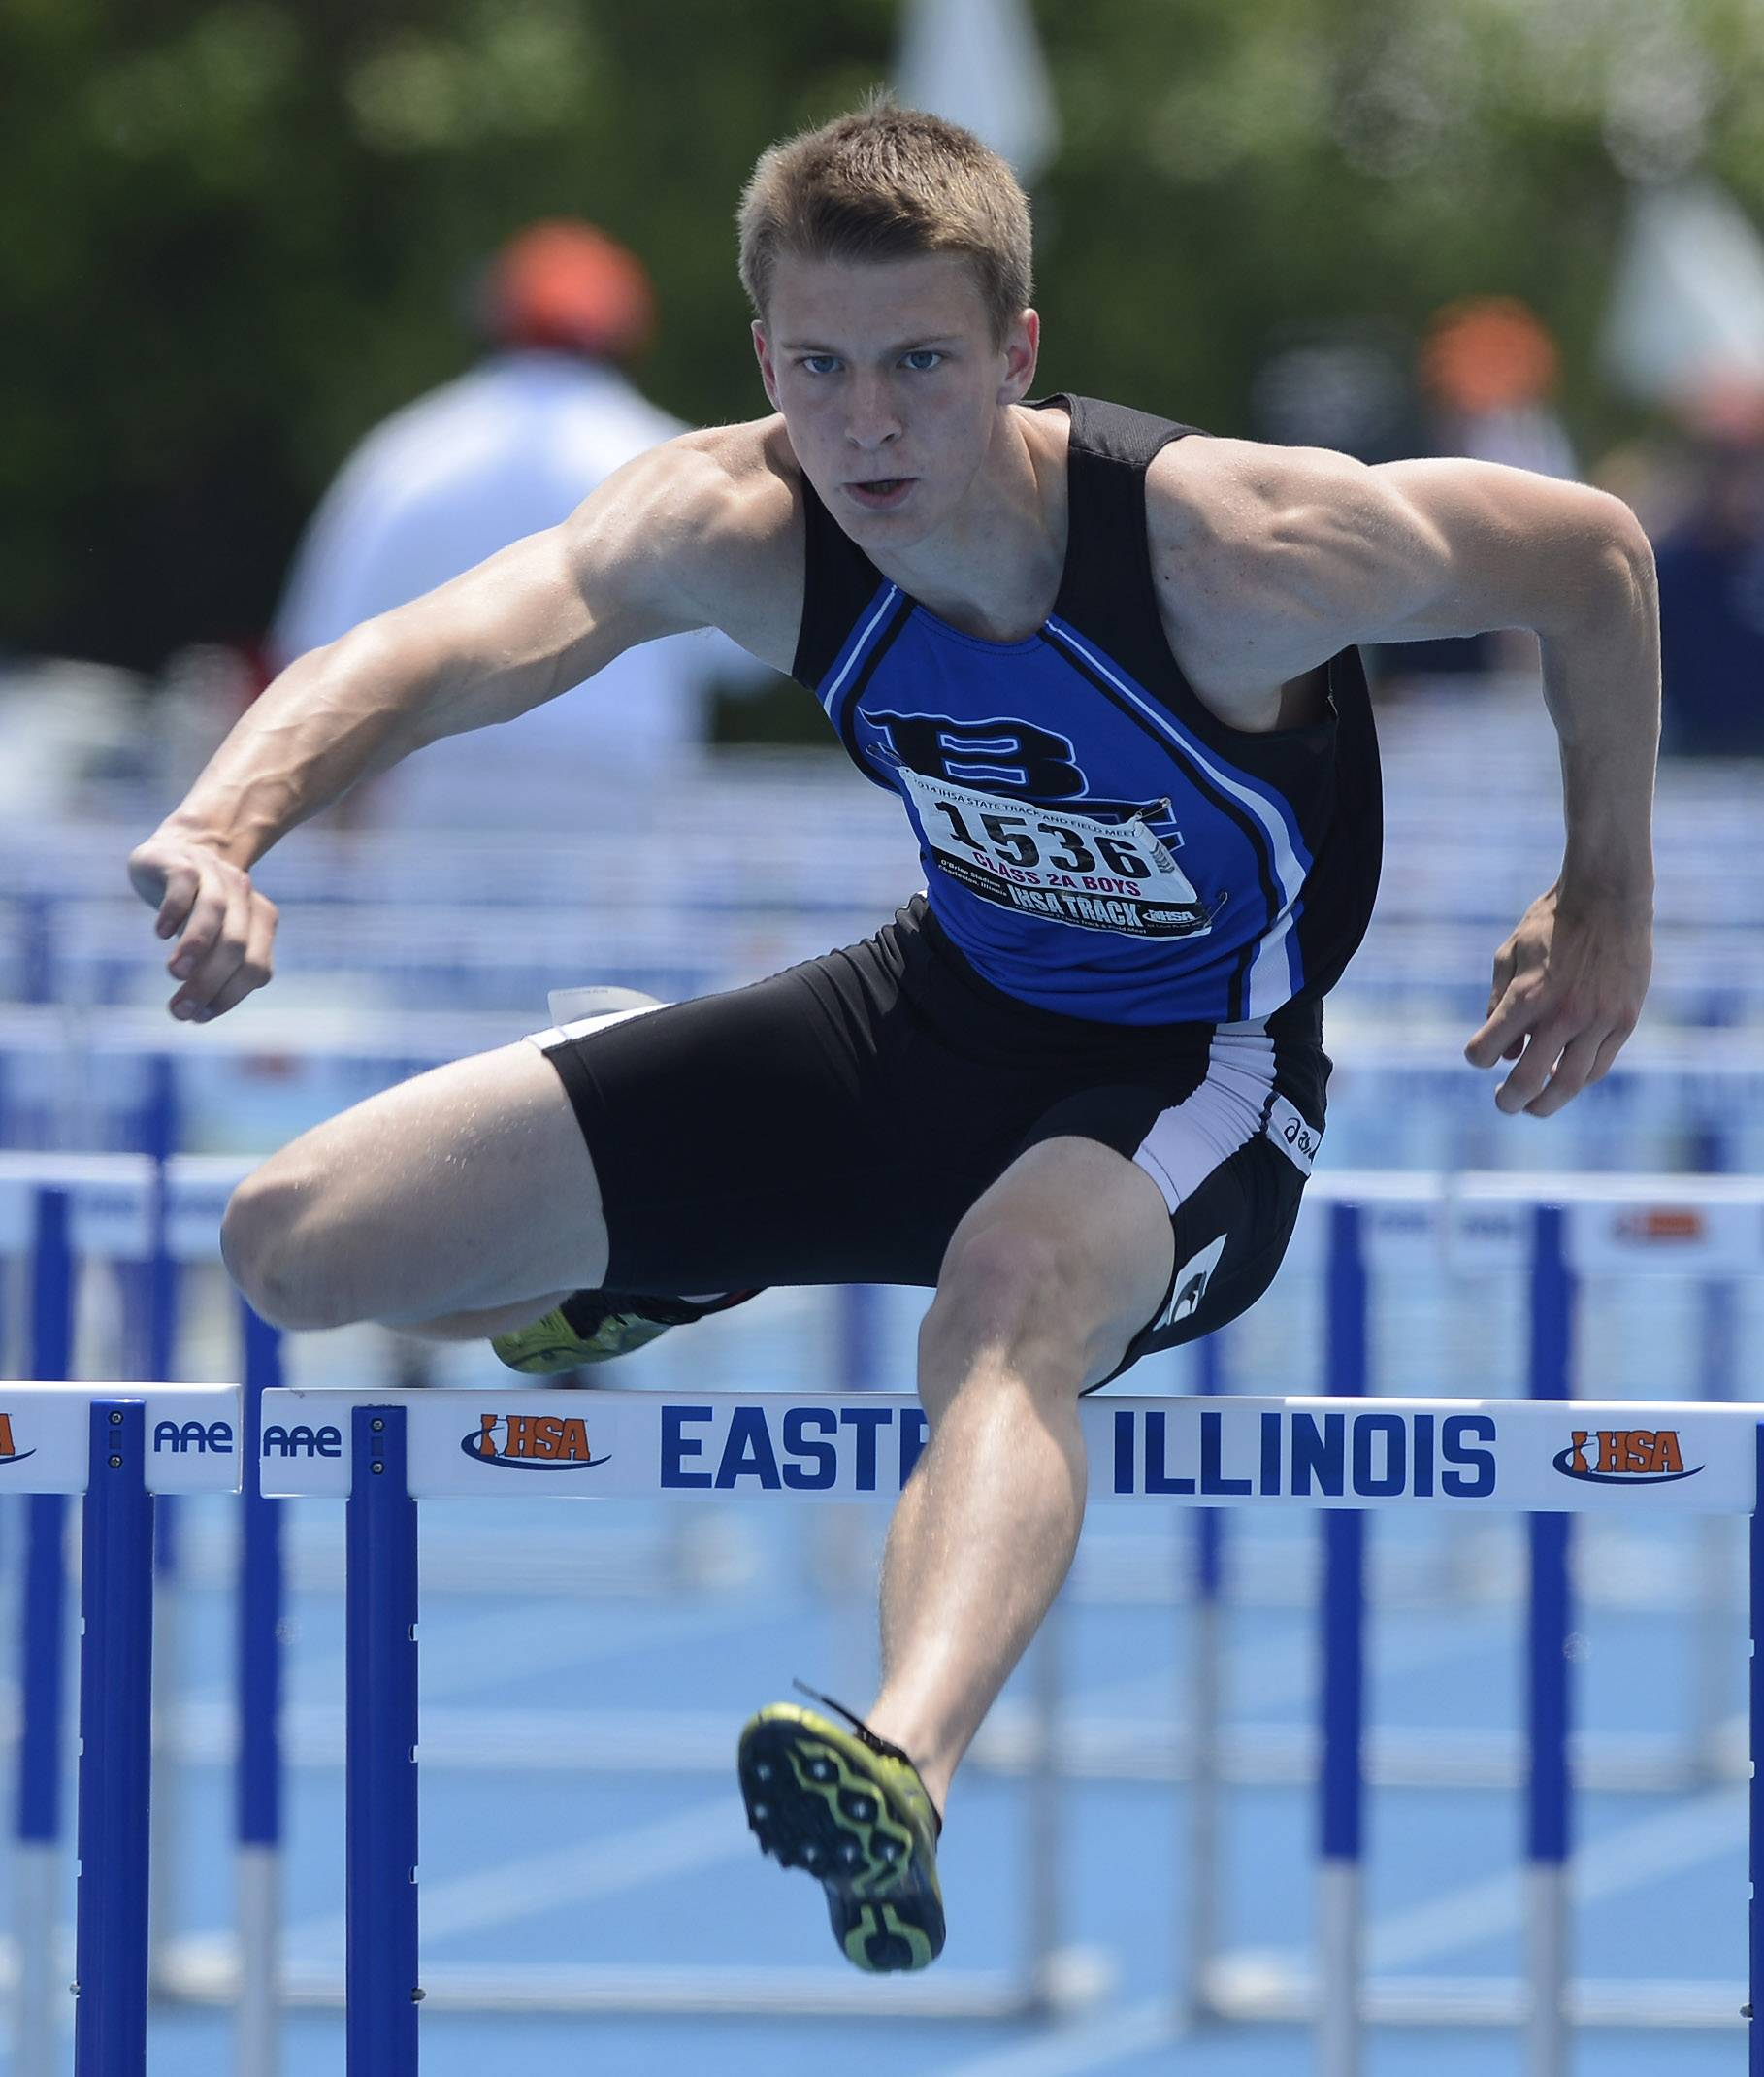 Burlington Central's Lucas Ege clears the final hurdle in the 110-meter high hurdles during the boys class 2A state track and field finals in Charleston Saturday.